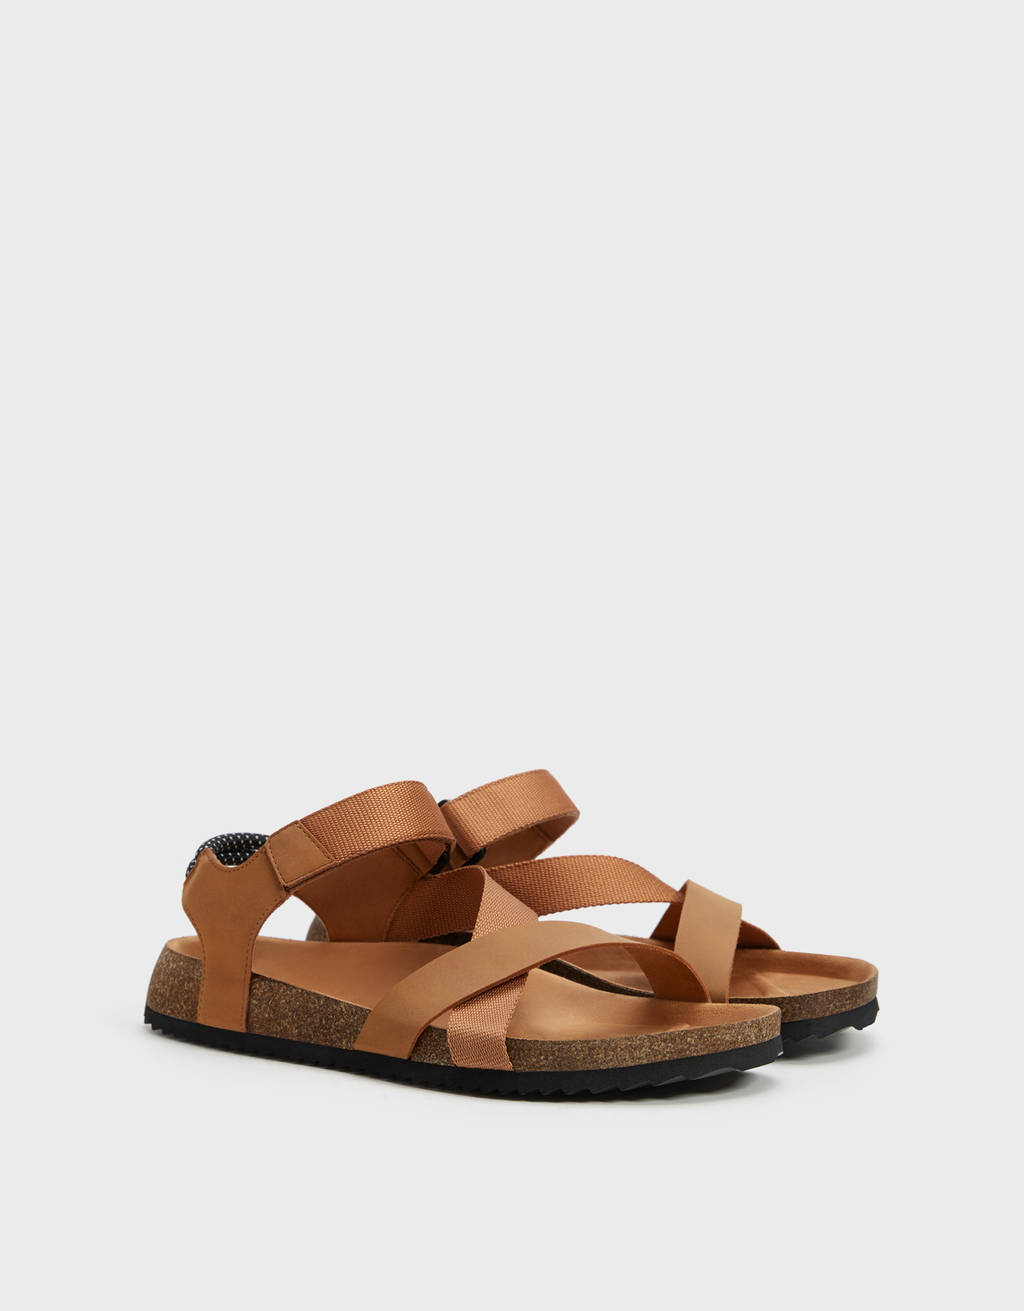 Men's multistrap sandal